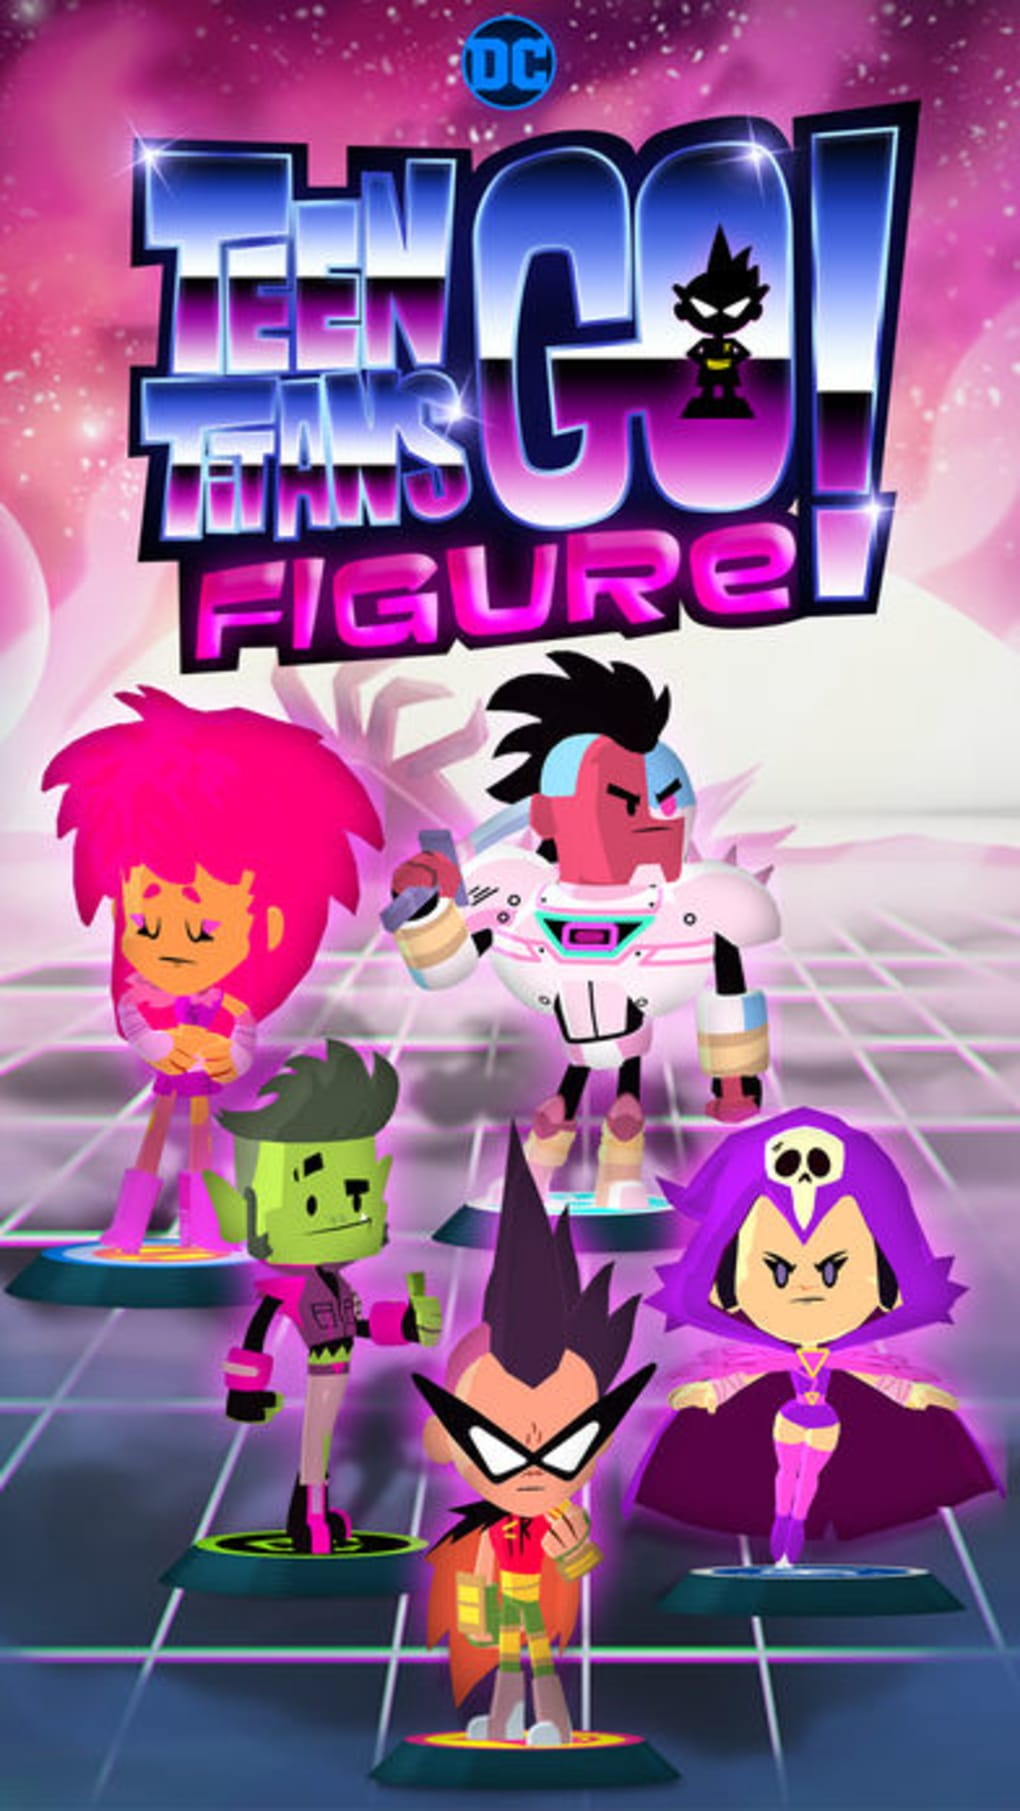 Teen Titans Go Figure For Iphone - Download-5002